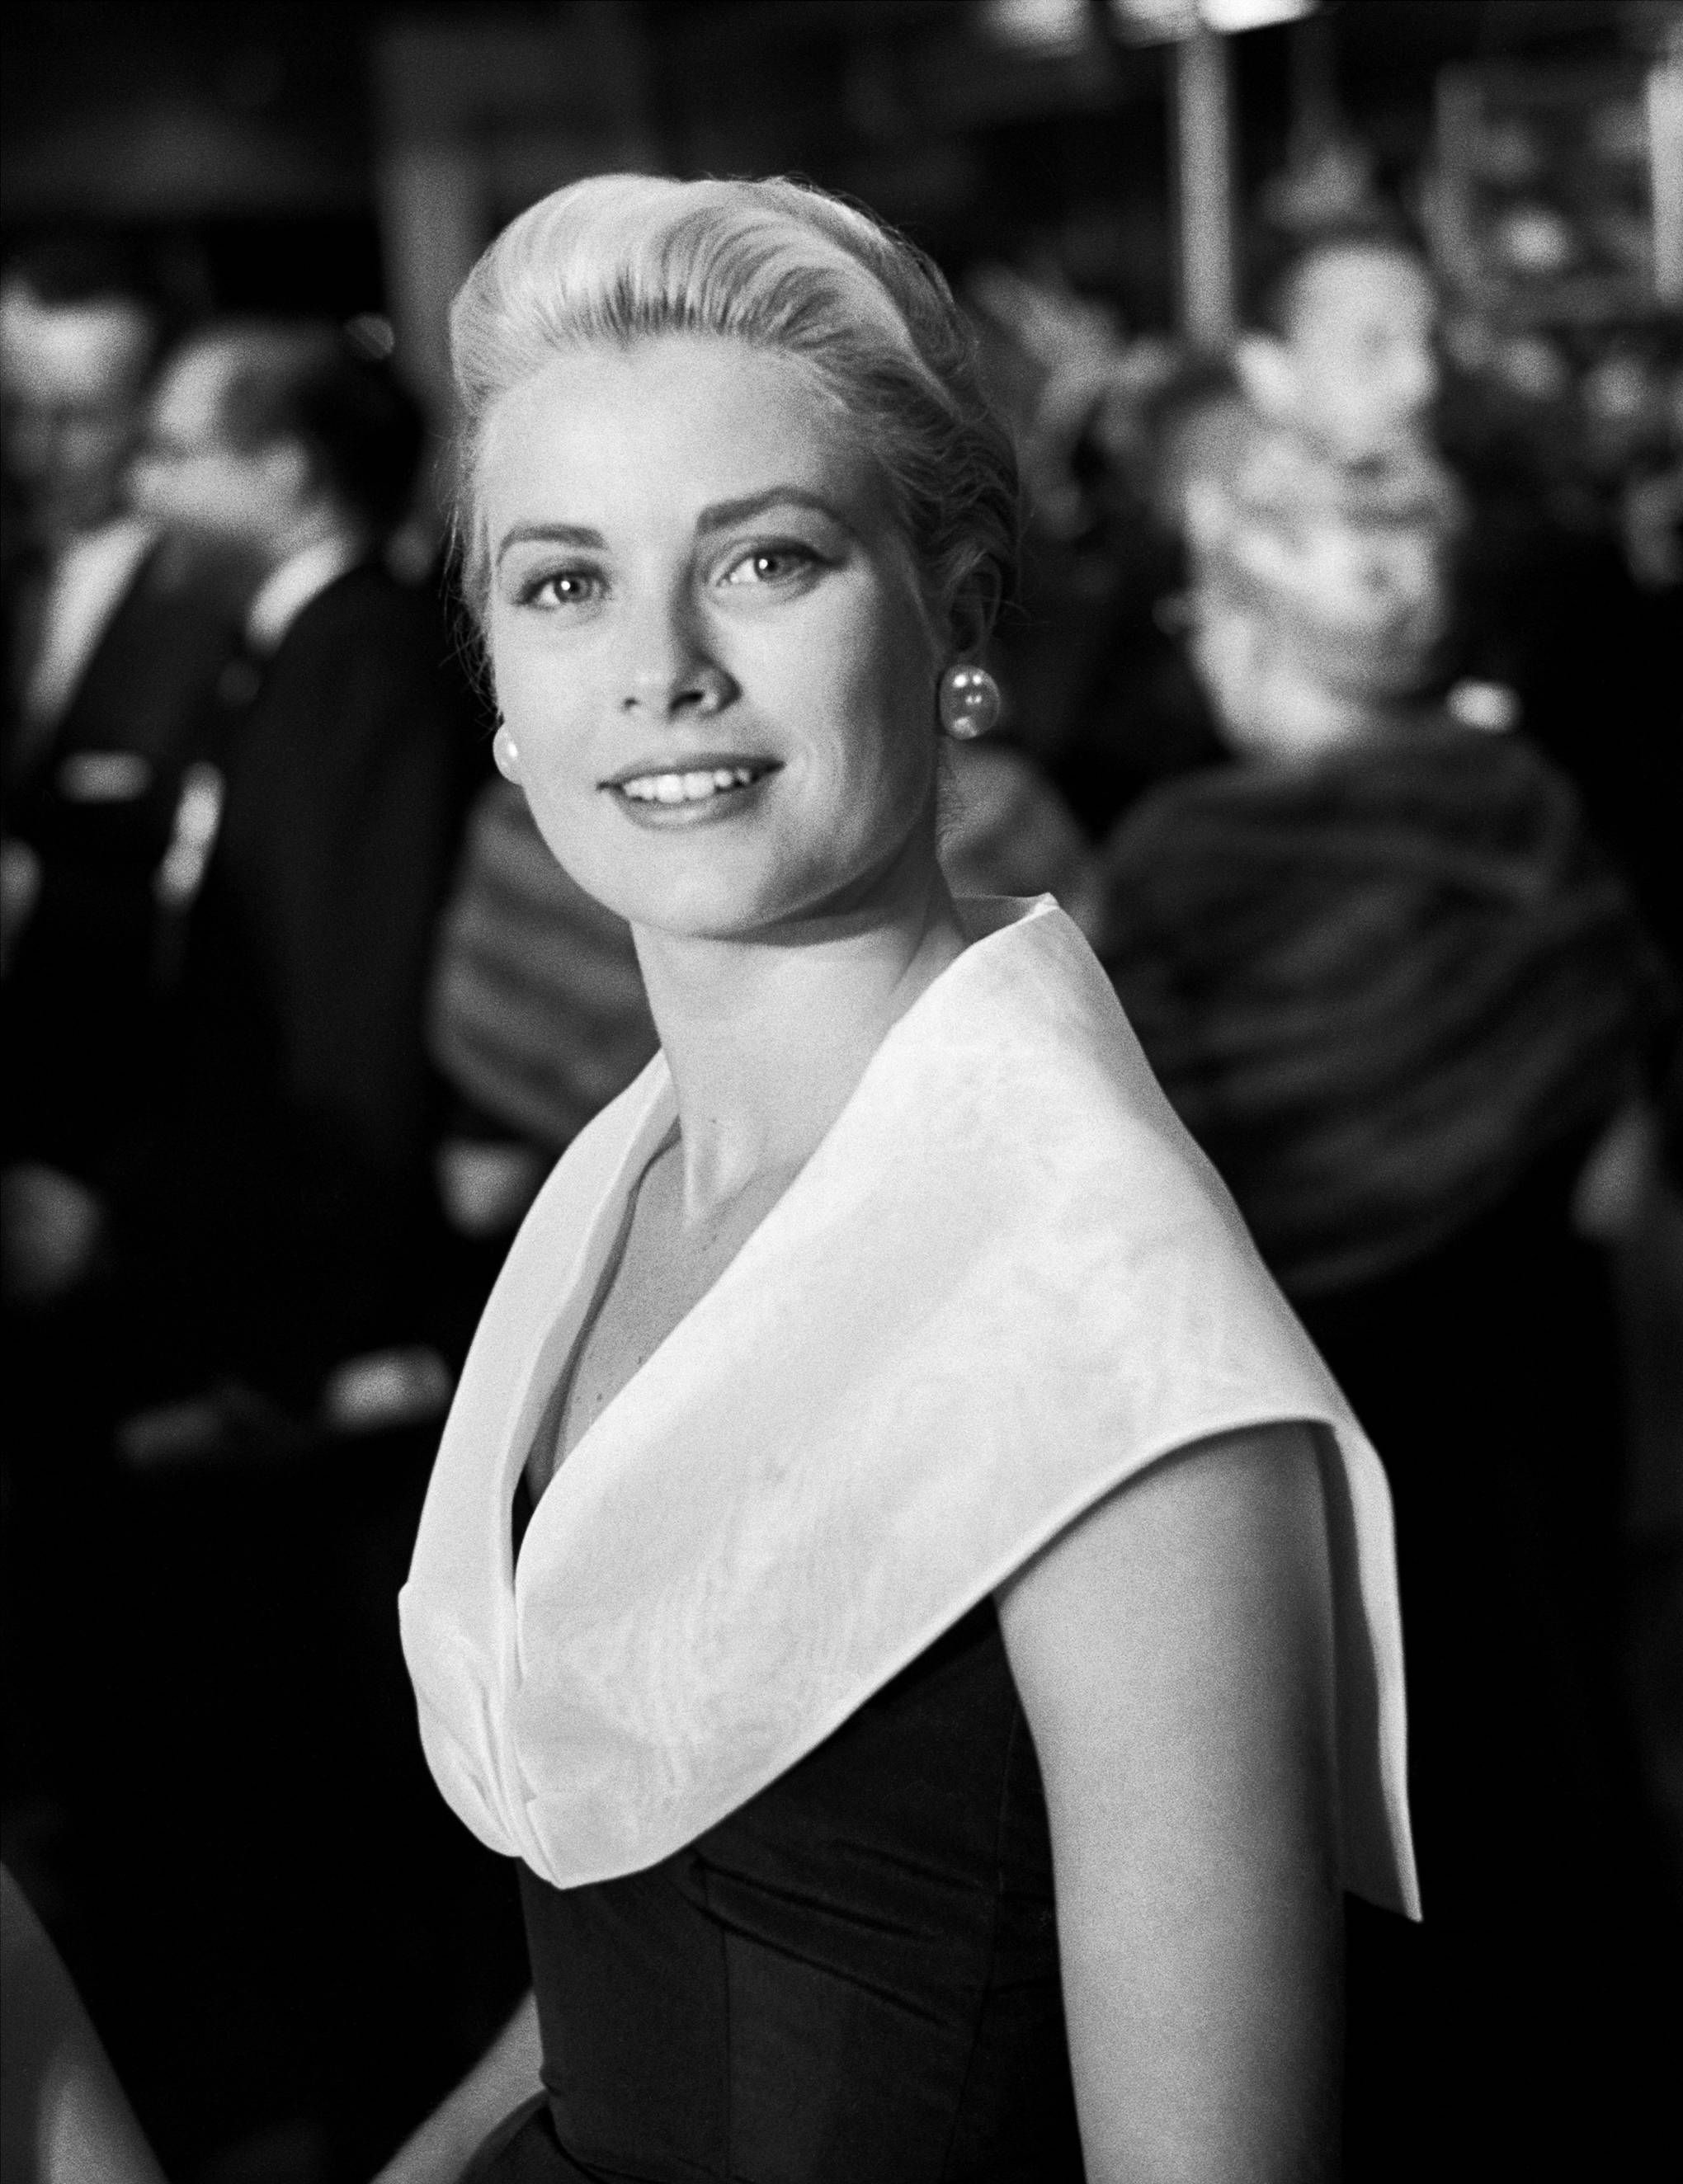 Christian Dior Museum To Celebrate Grace Kelly's Enduring